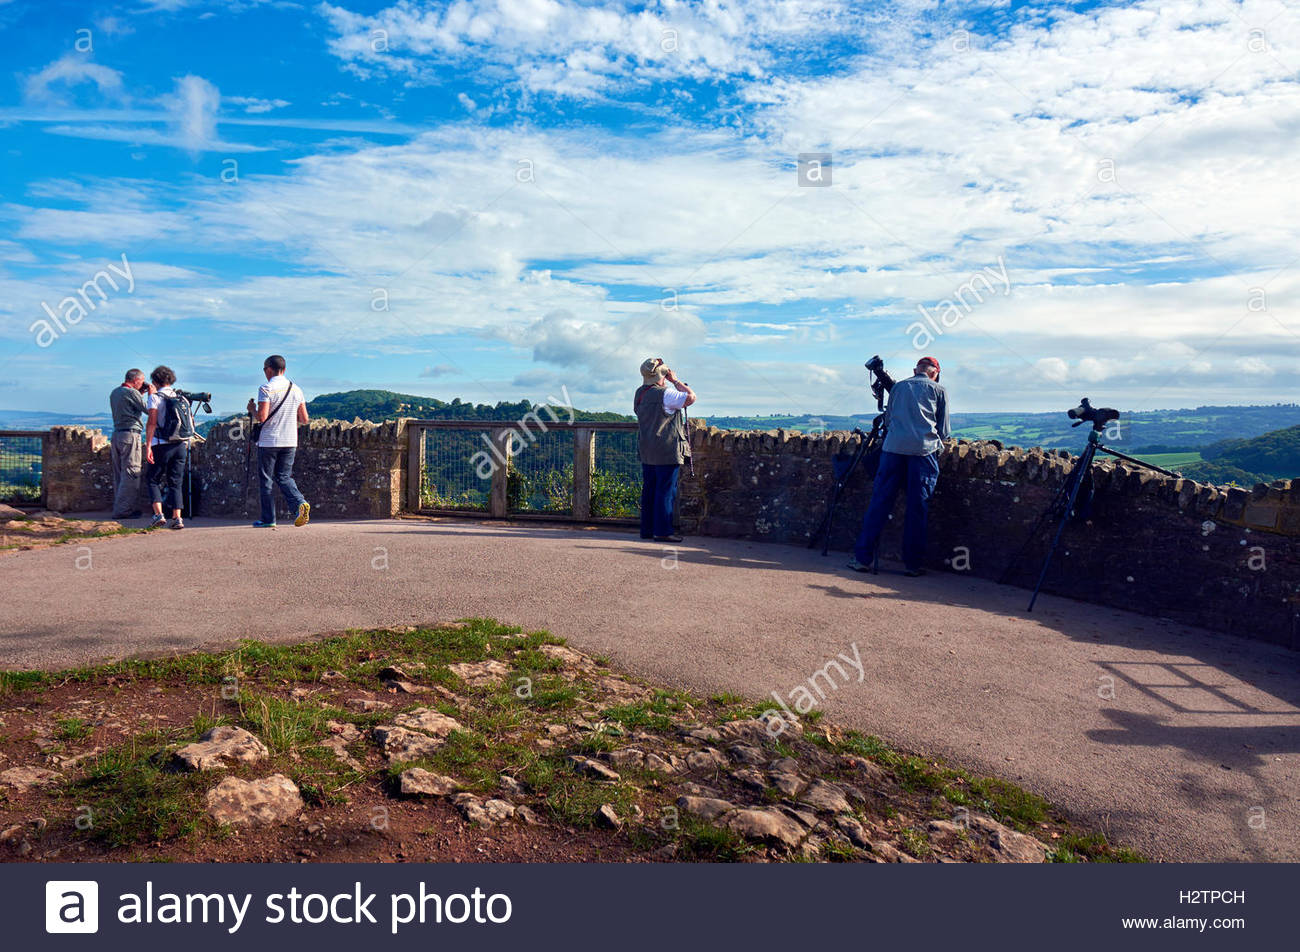 People with cameras and scope on the Symonds Yat rock viewpoint in the Wye Valley - Stock Image